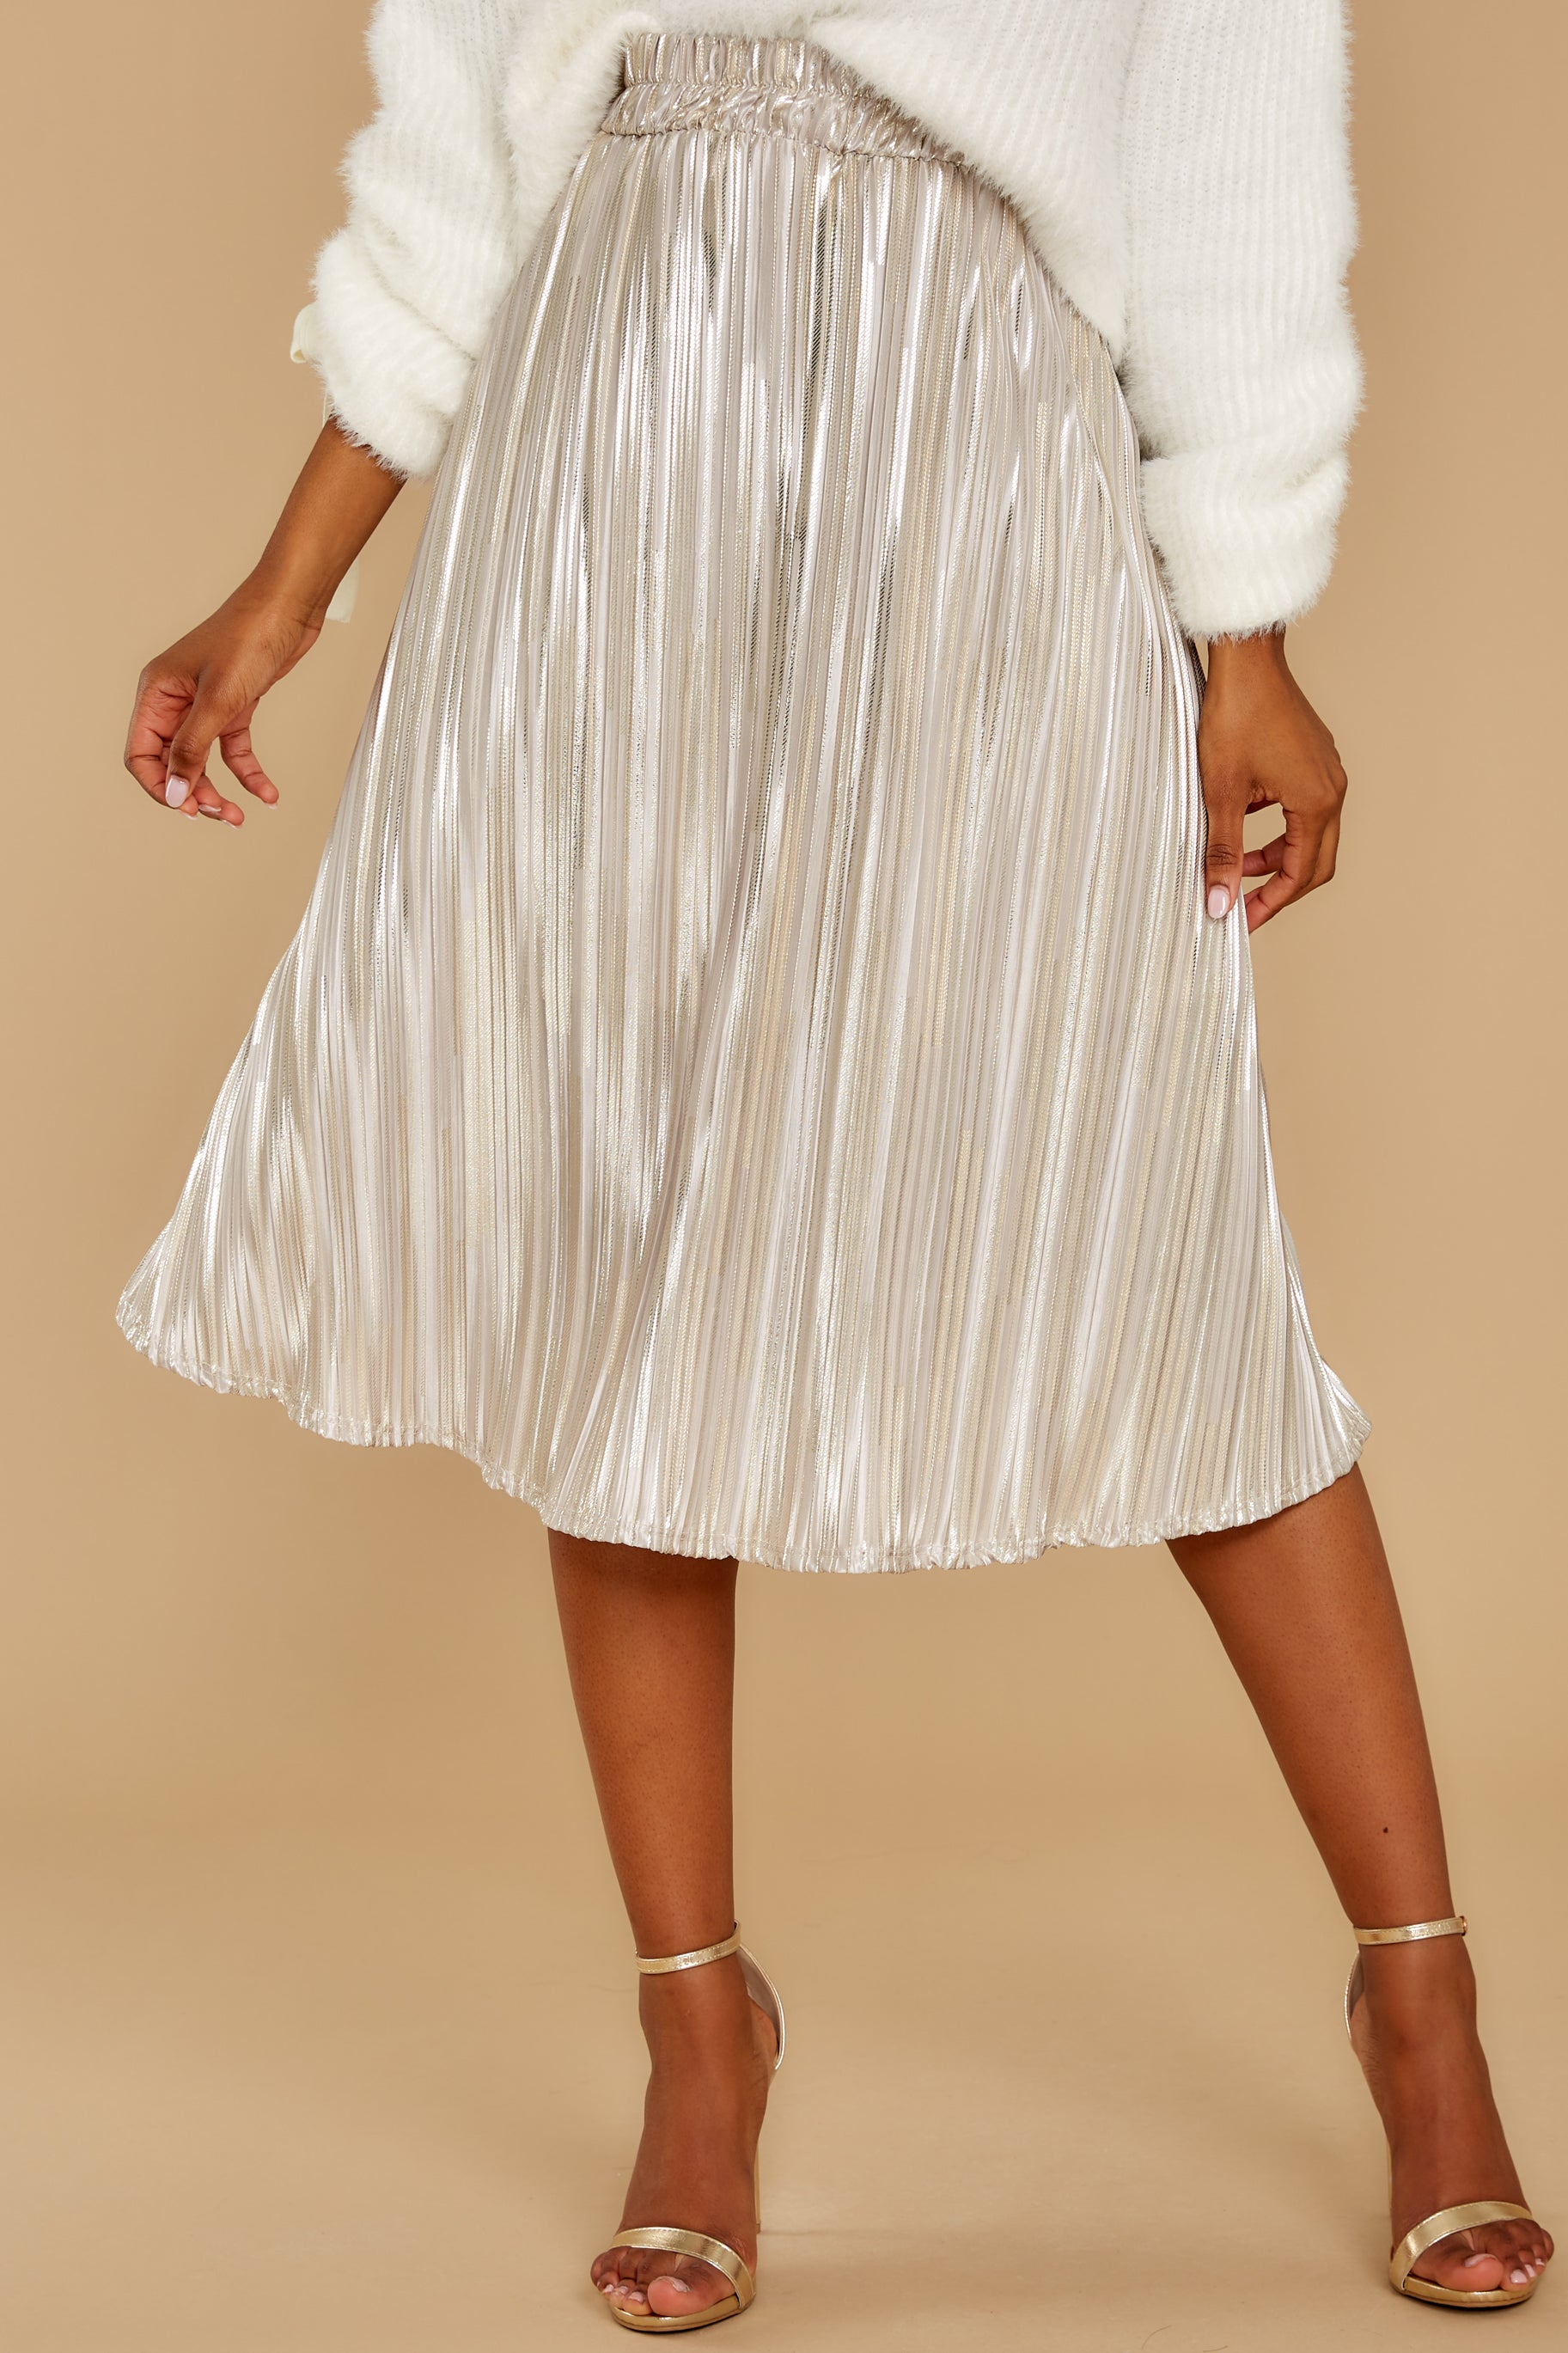 5 A Thing For You Champagne Midi Skirt at reddress.com